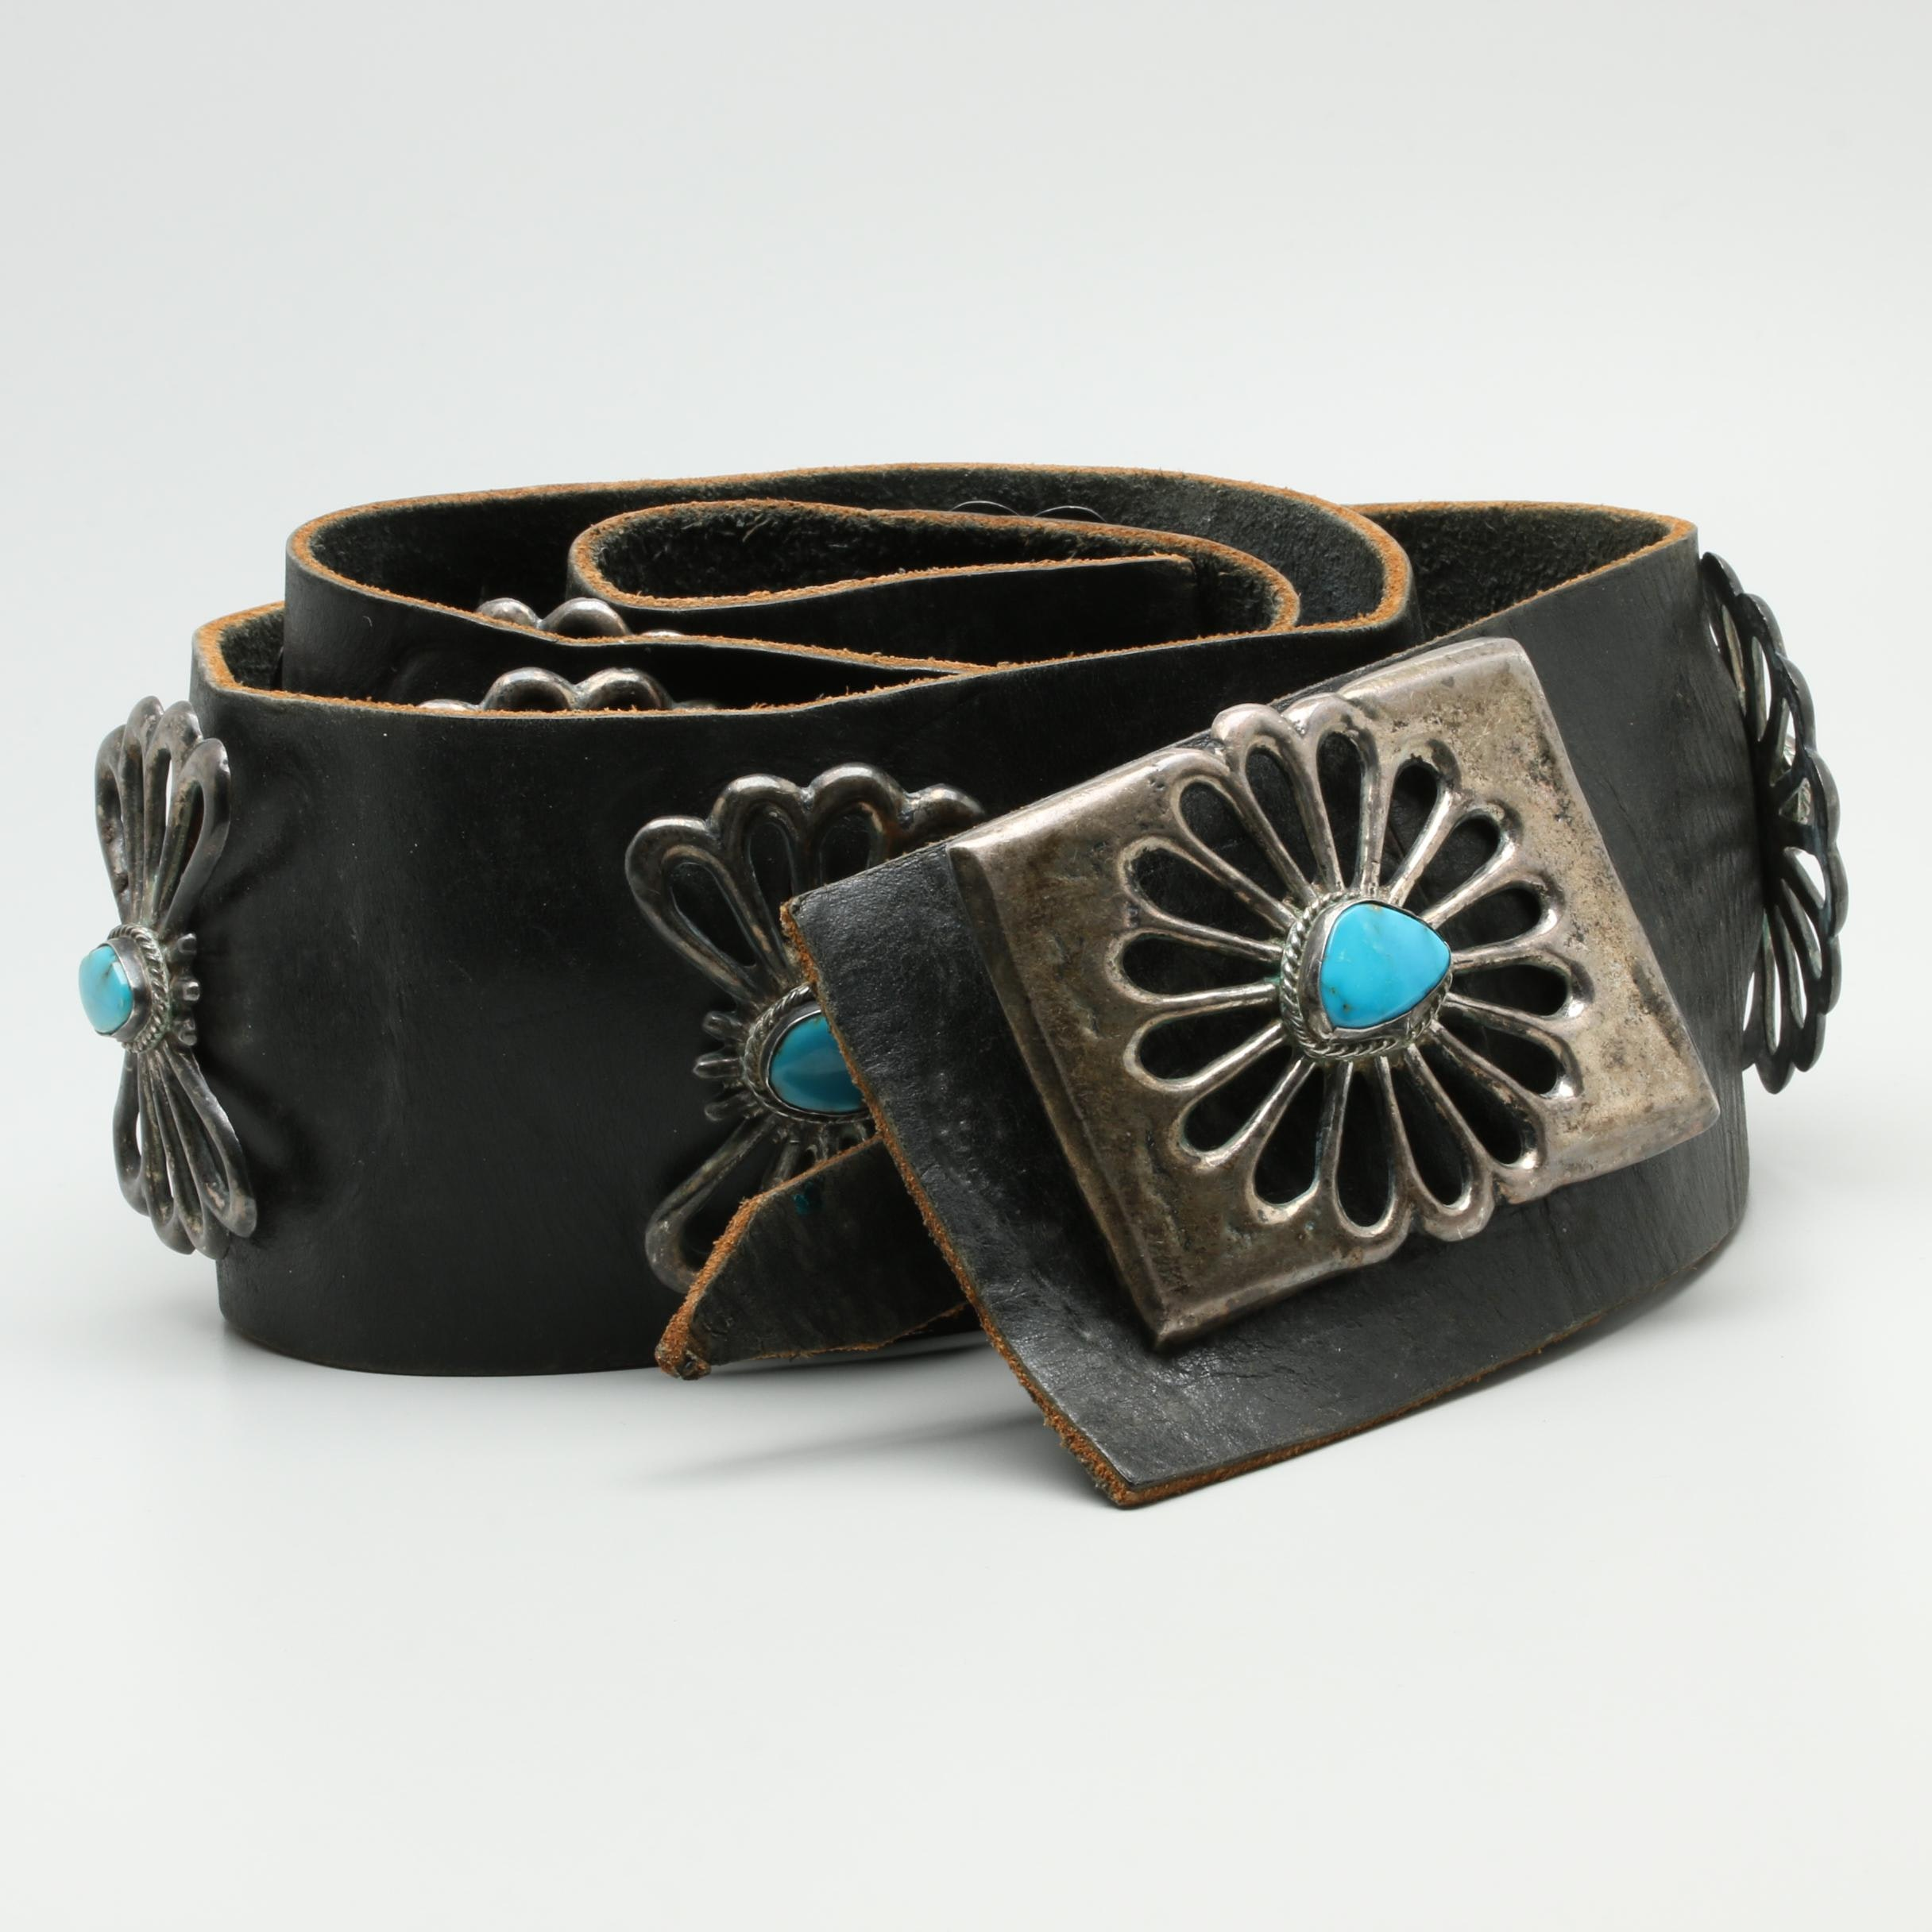 Sterling Silver Turquoise Accent Leather Belt